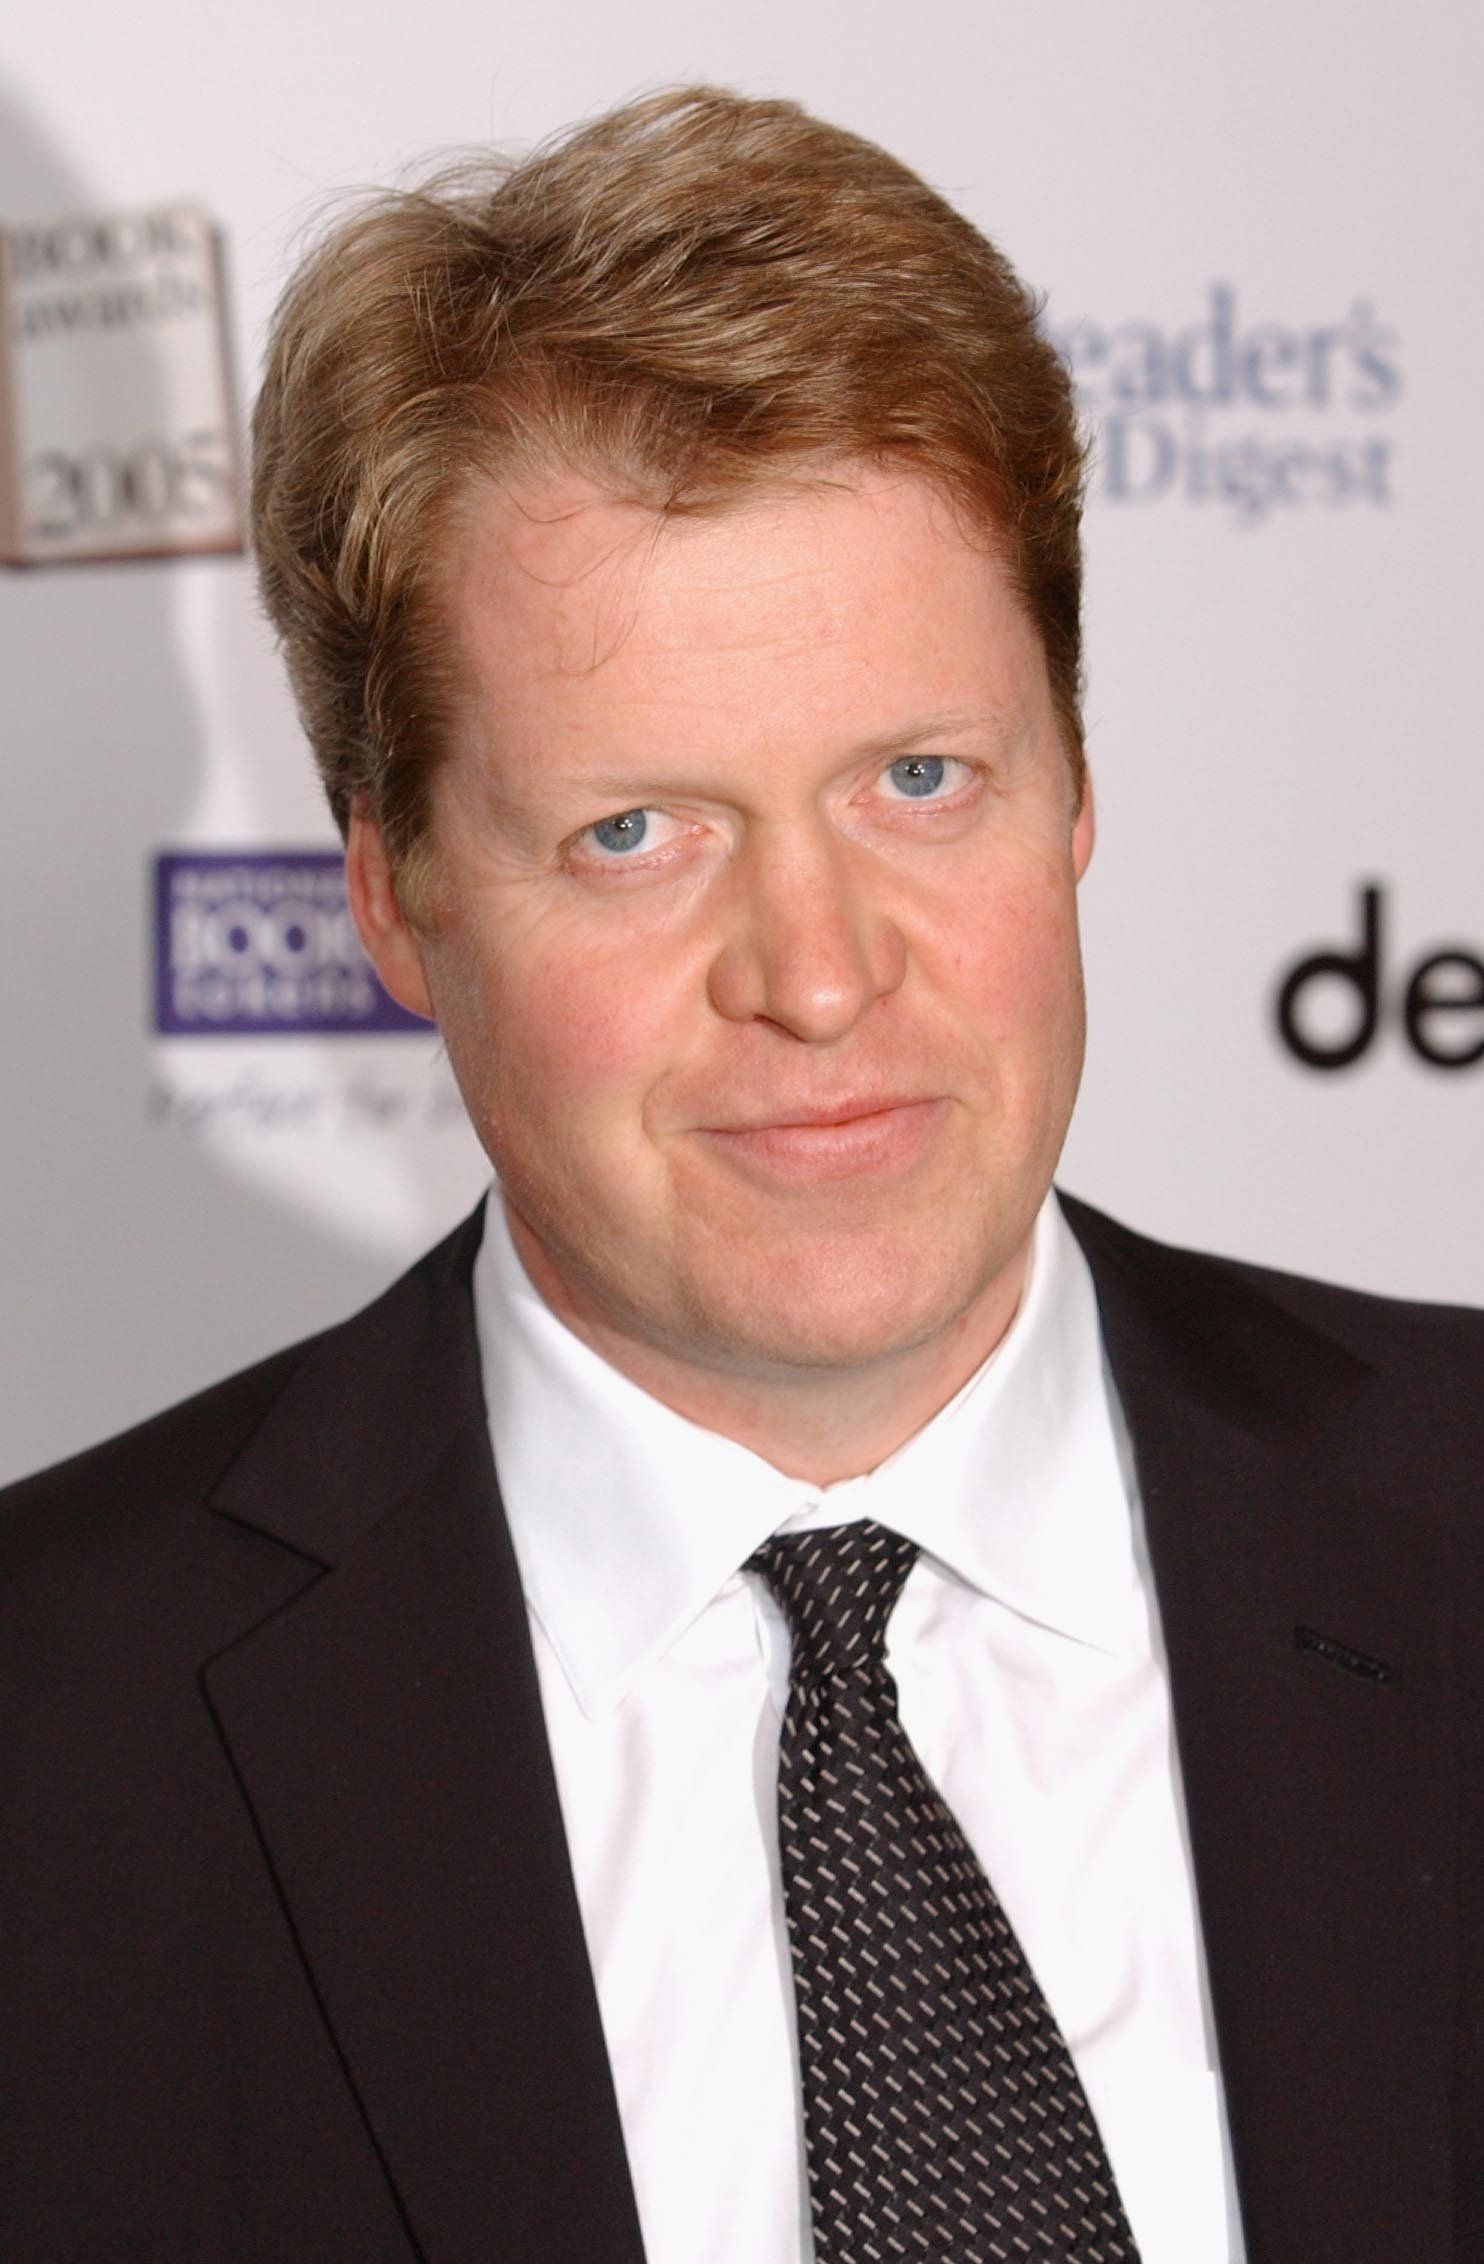 Earl Spencer's former employee complains to police over false documents